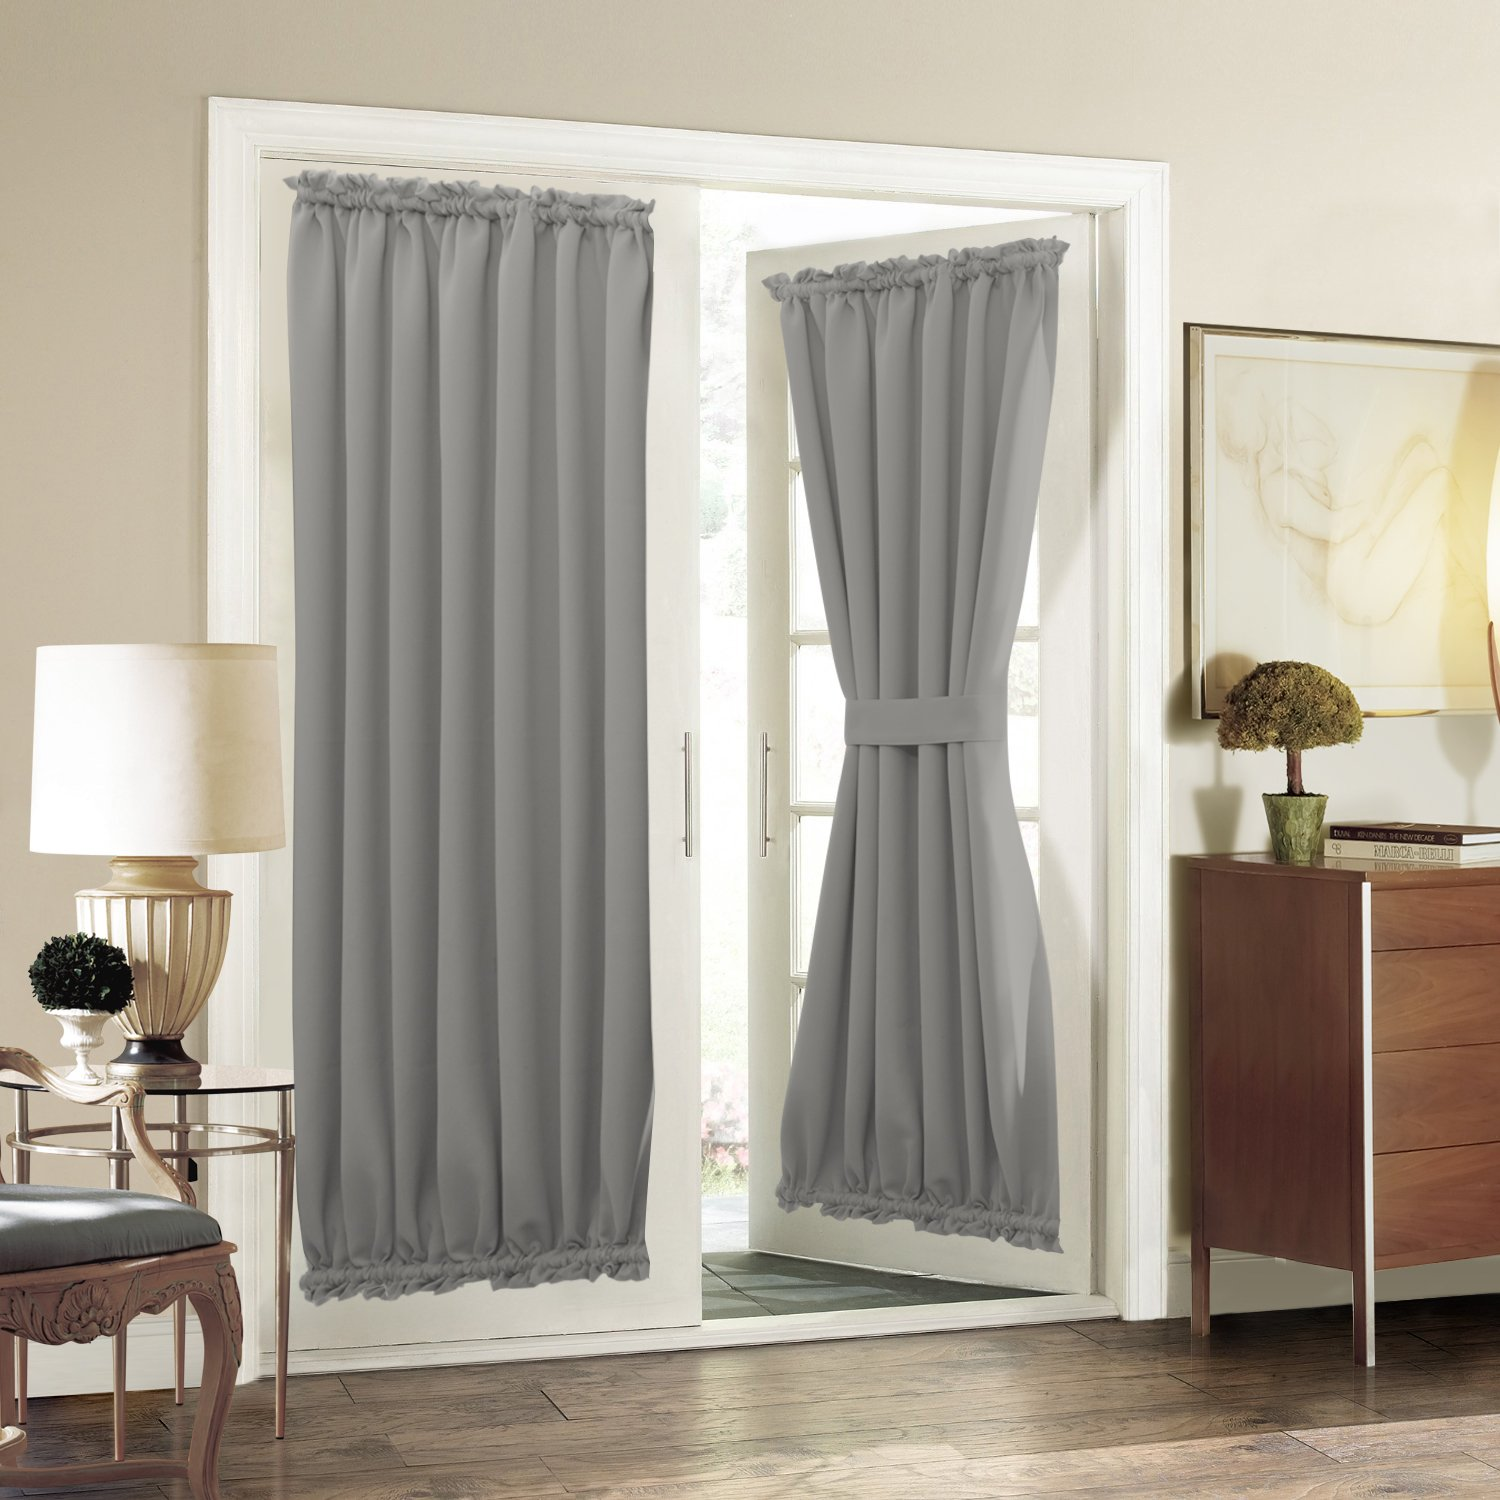 Top 8 Best Curtains For Noise Reduction - Buyer's Guide 7